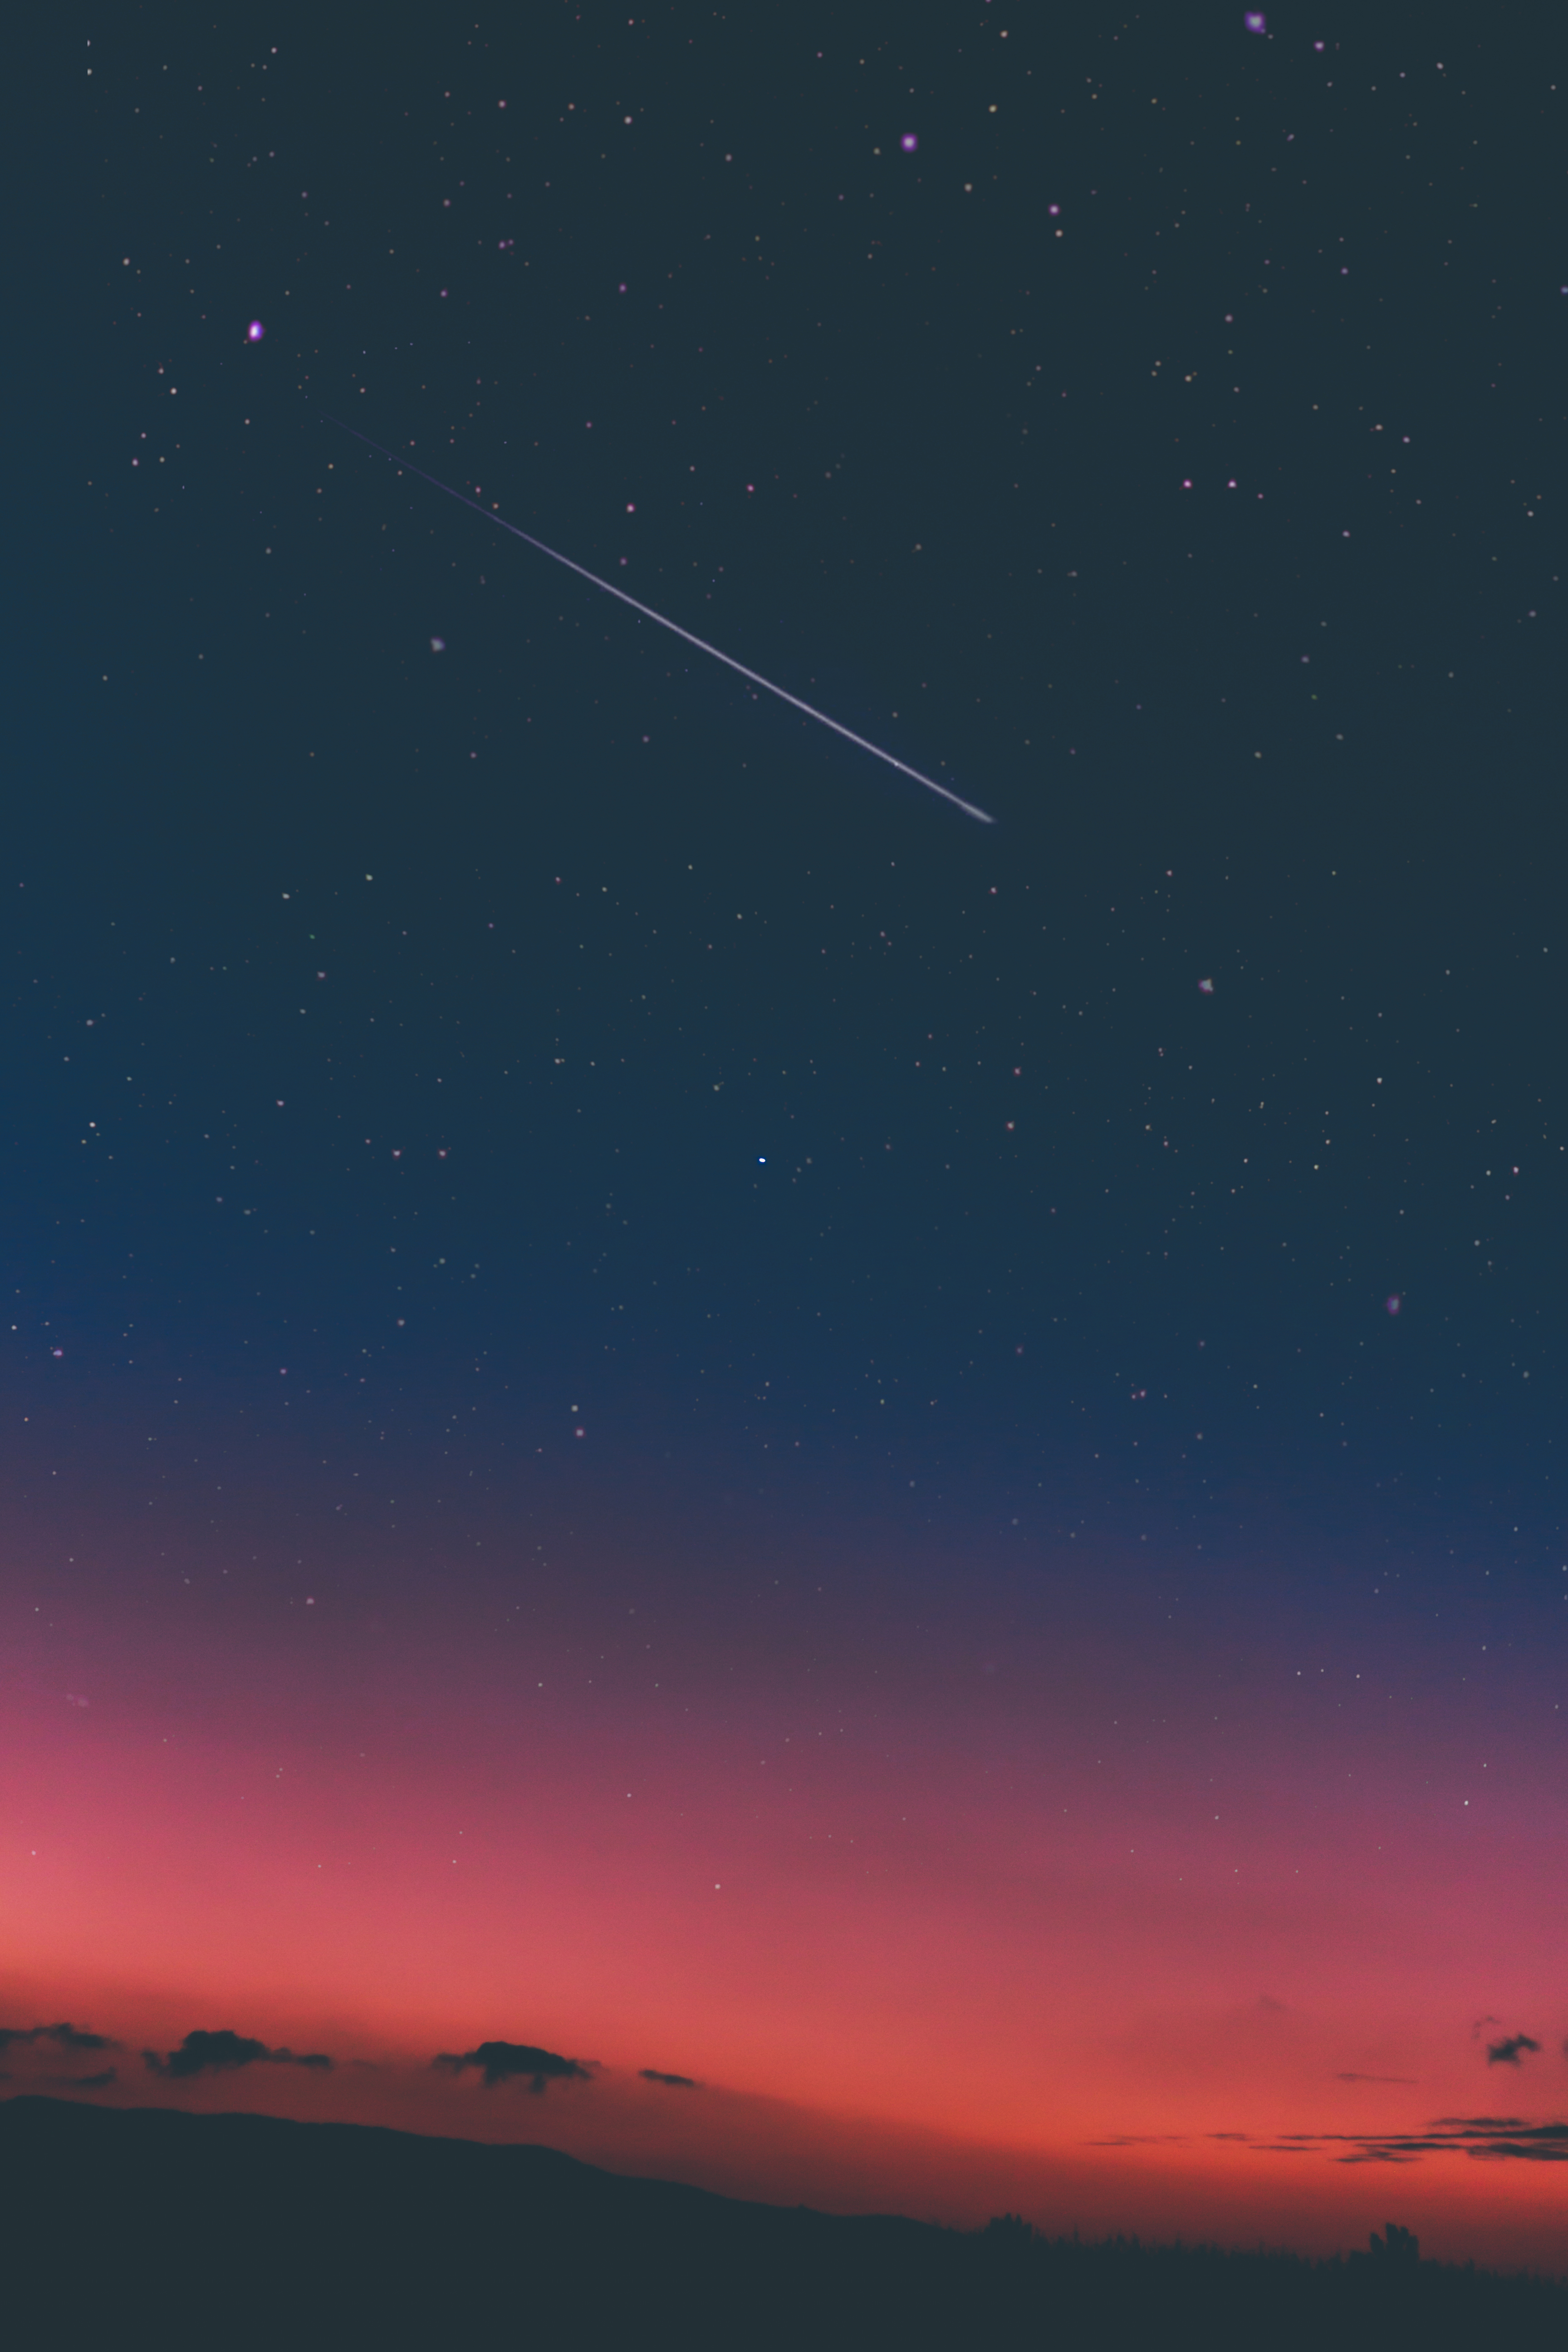 Red Iphone 7 Plus Wallpaper Shooting Star Photo By Diego Ph Jdiegoph On Unsplash